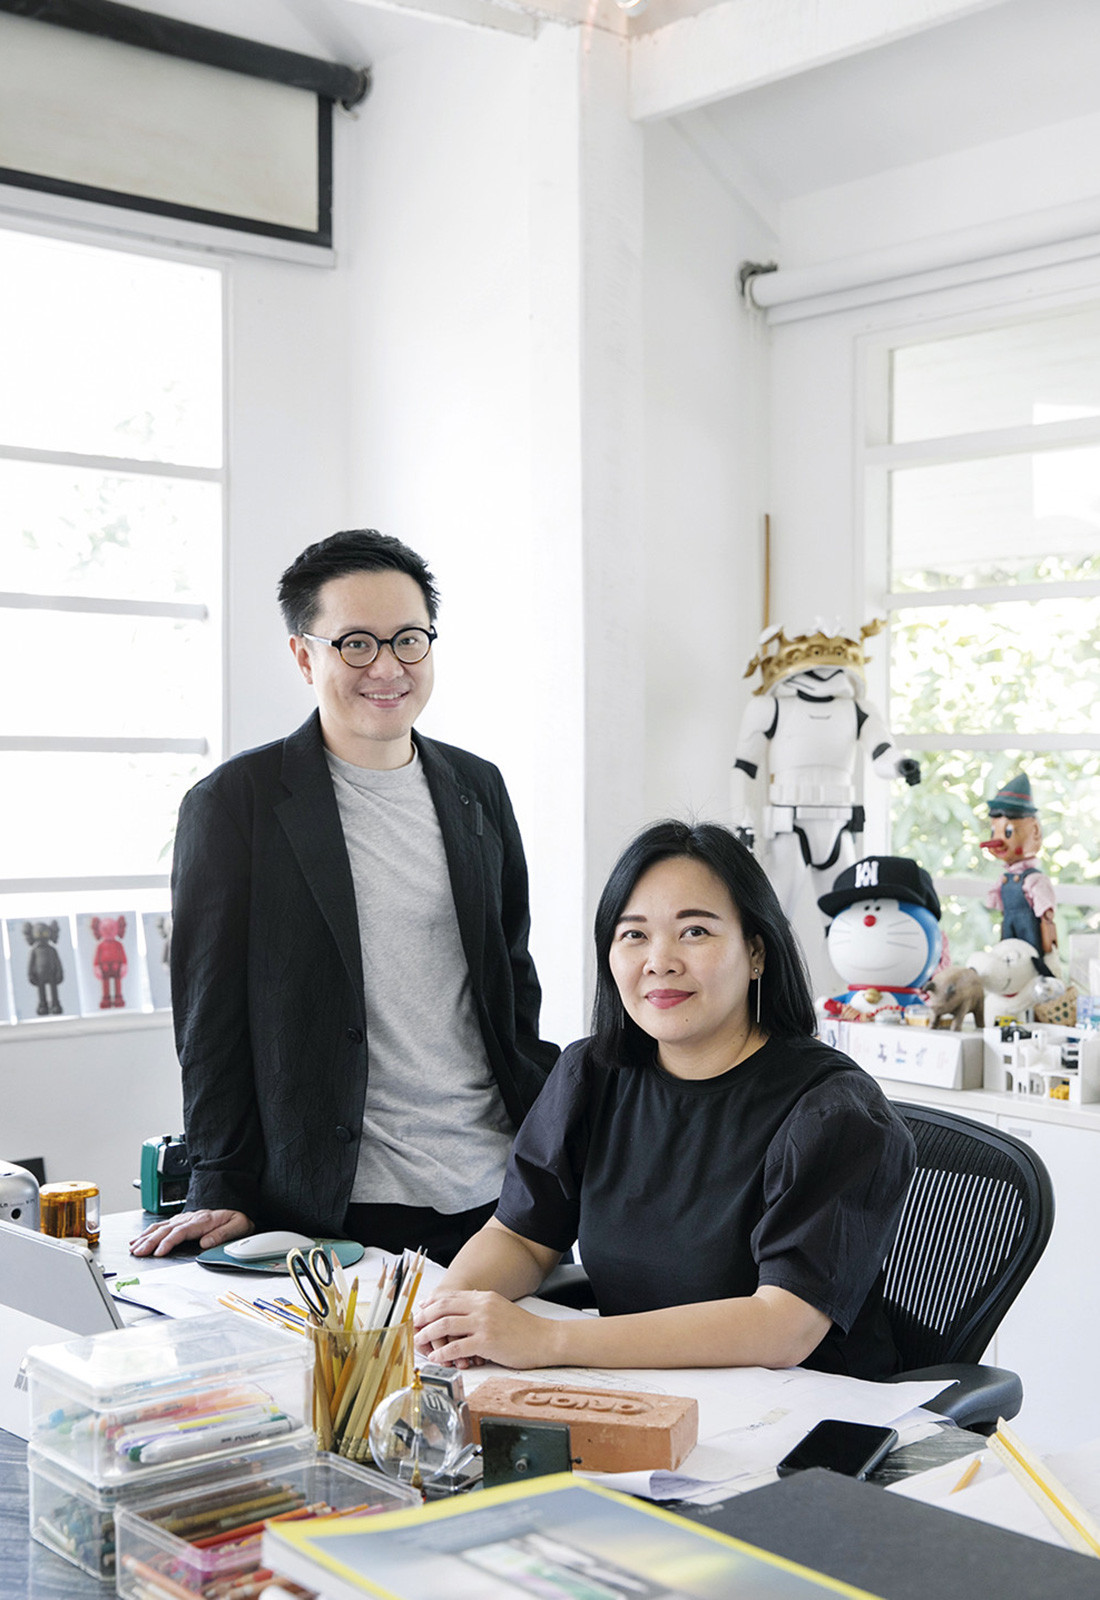 Siriyot Chaiamnuay and Arisara Chaktranon in the Onion studio. Their work spans from hospitality and commercial projects to residential, art installations and products. Photo by Adit Sombunsa.